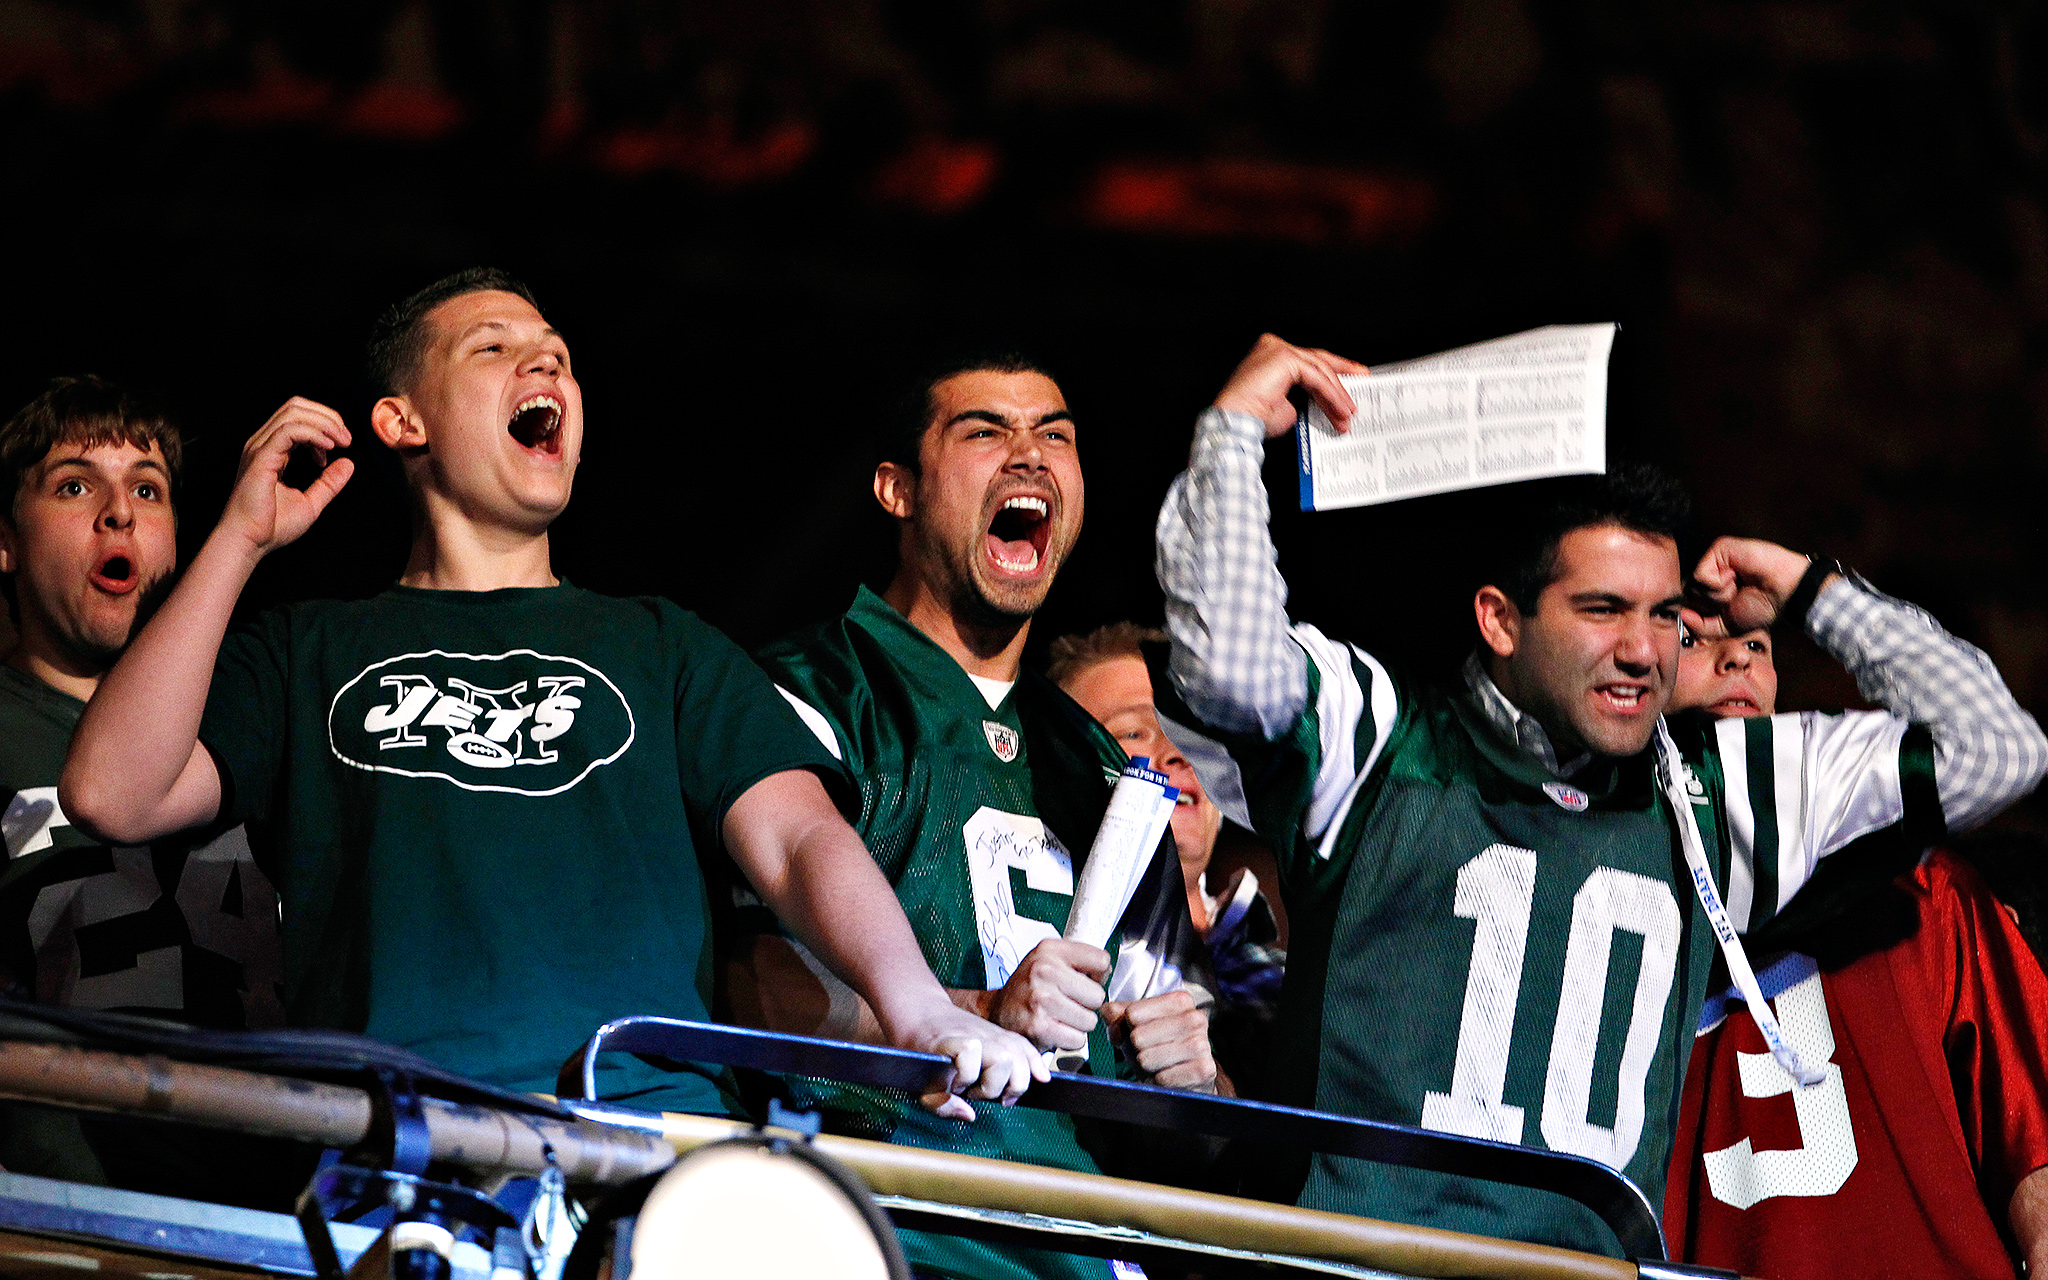 Jets Fans At The Draft